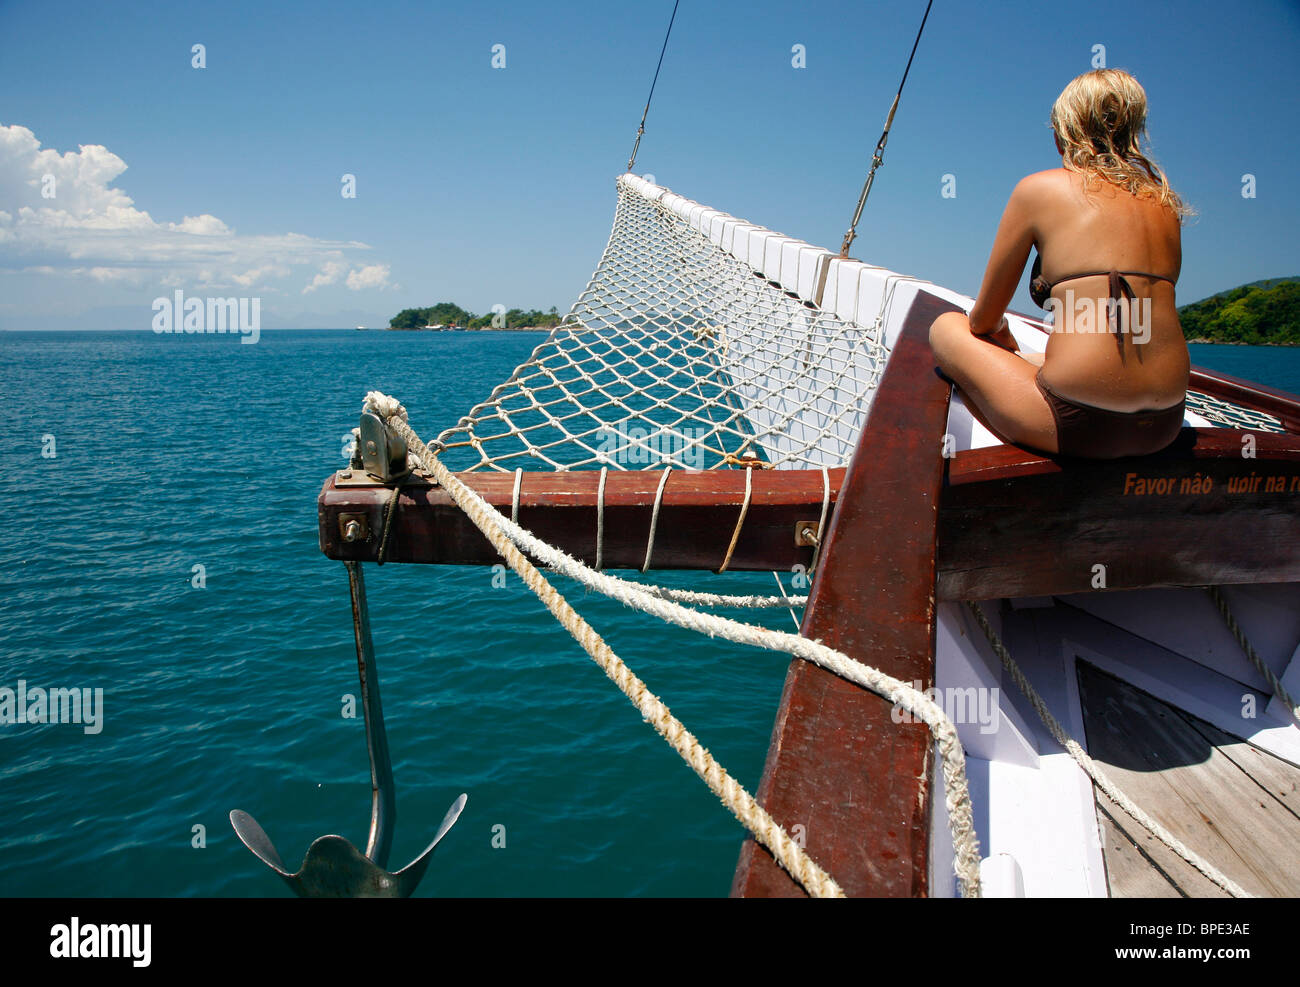 Tourists on a schooner cruising between the different beaches and islands around Parati, Rio de Janeiro State, Brazil. - Stock Image